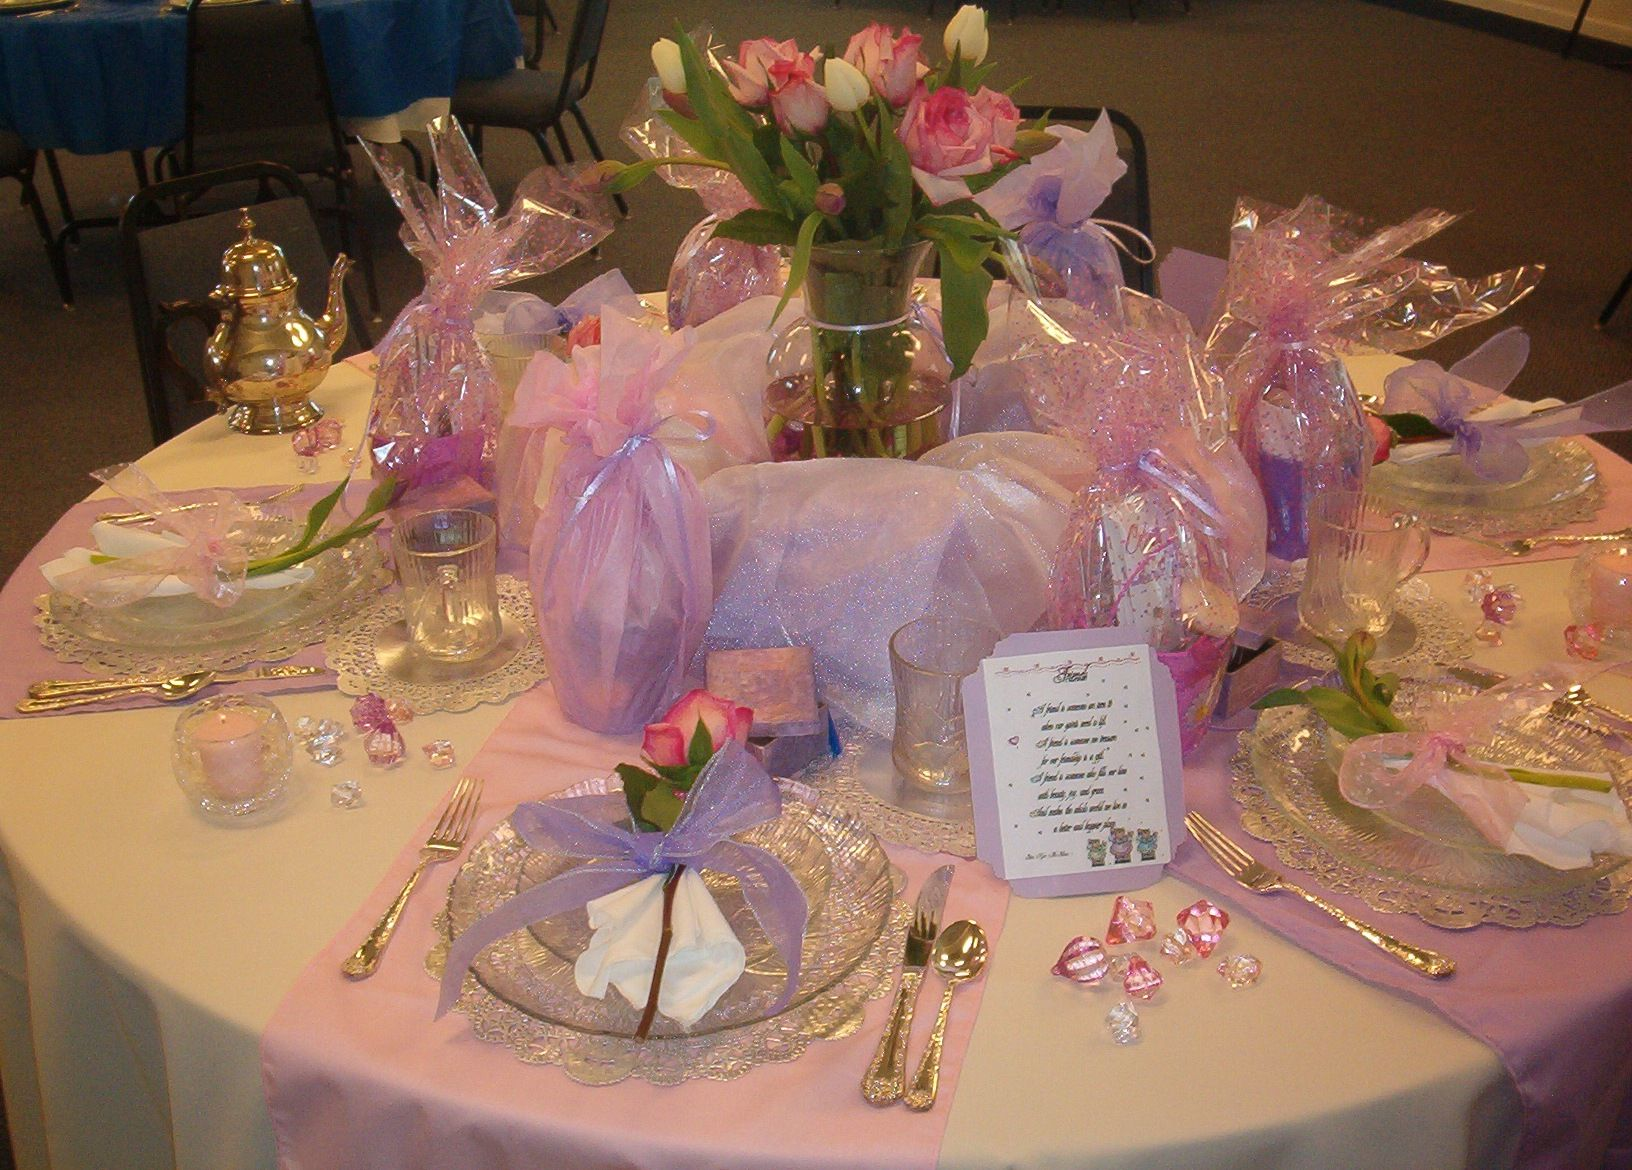 Valentine party ideas for church - Find This Pin And More On Party Ideas By Odiliaveloso